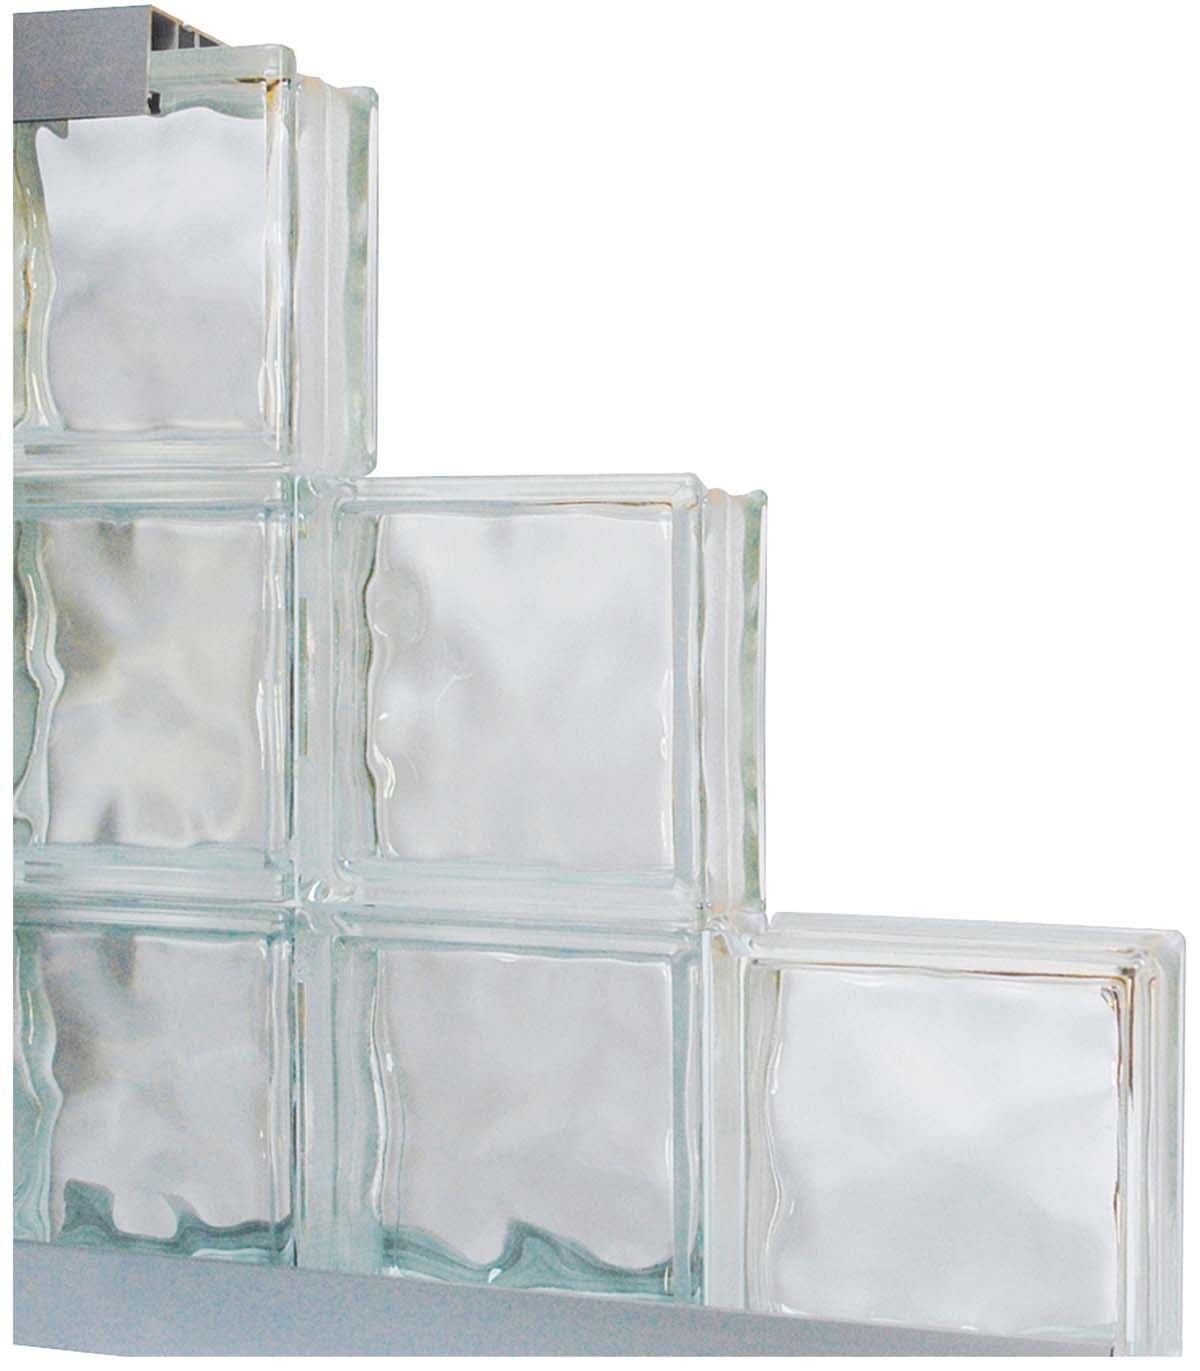 7e6e4d blast resistant glass block panel from pittsburgh corning architect glass block windows pittsburgh pa